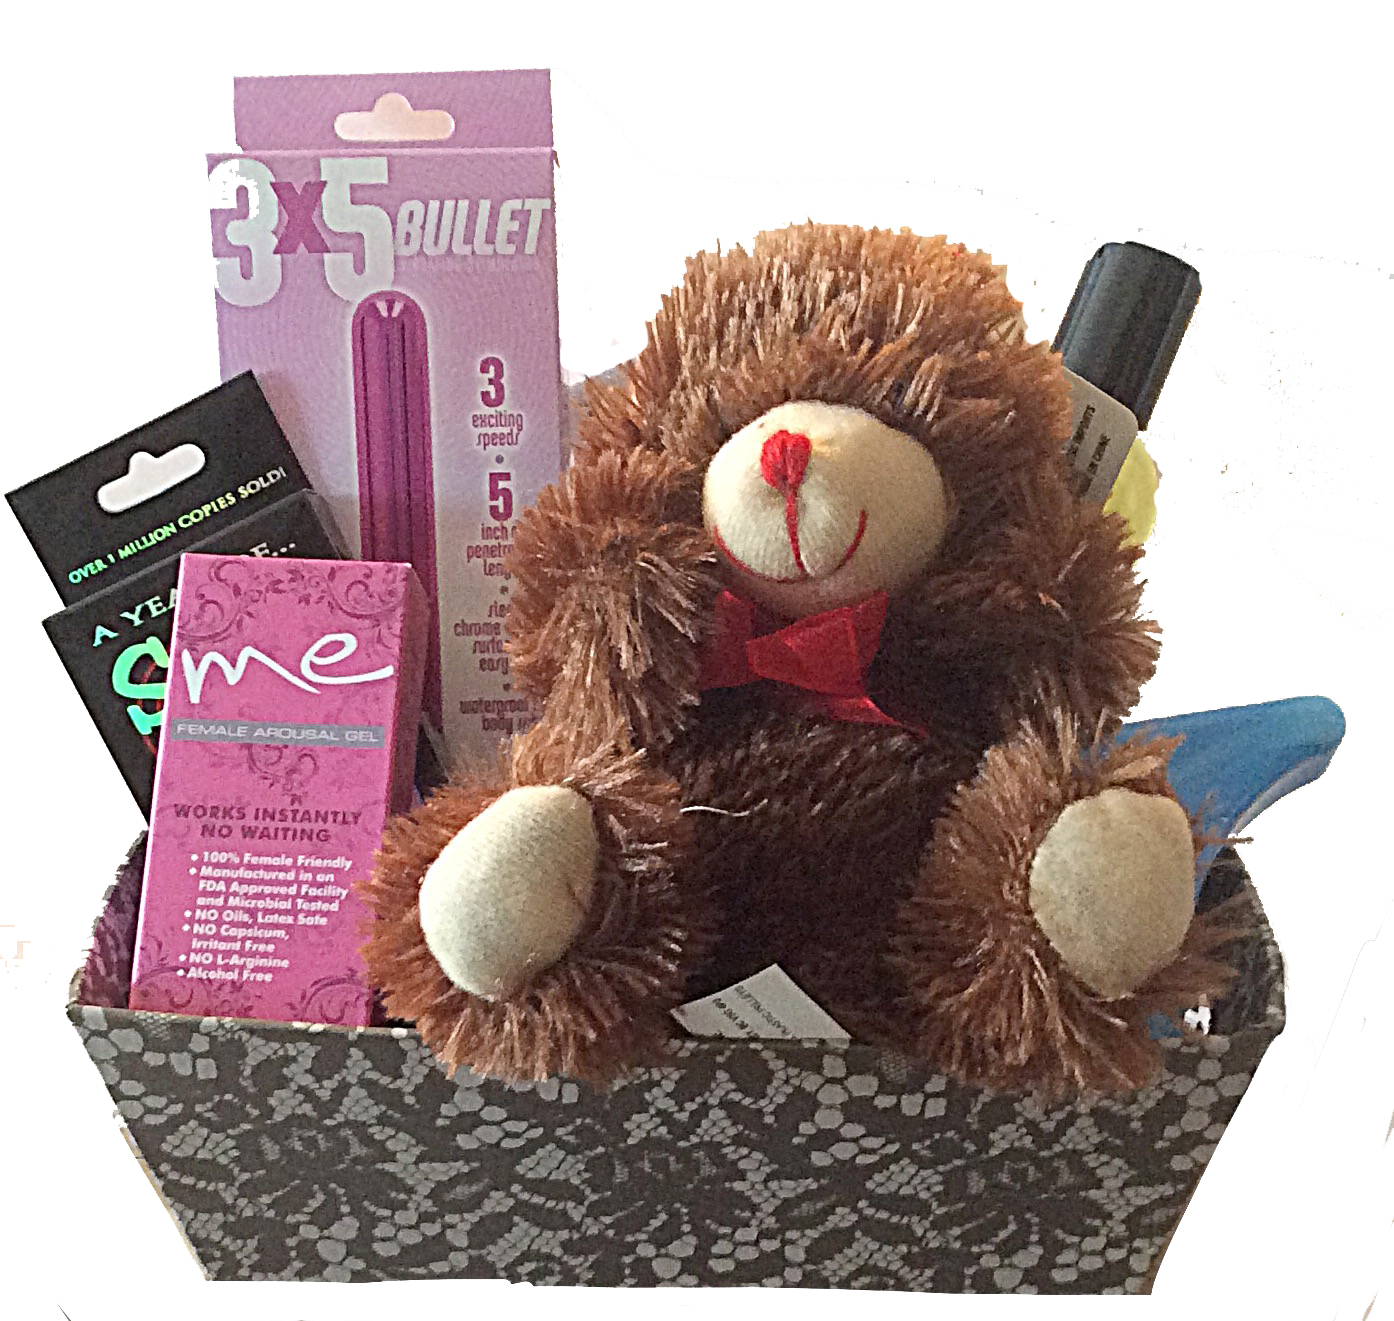 Romantic gifts and gift baskets for all occasions touch me here gift basket sciox Image collections